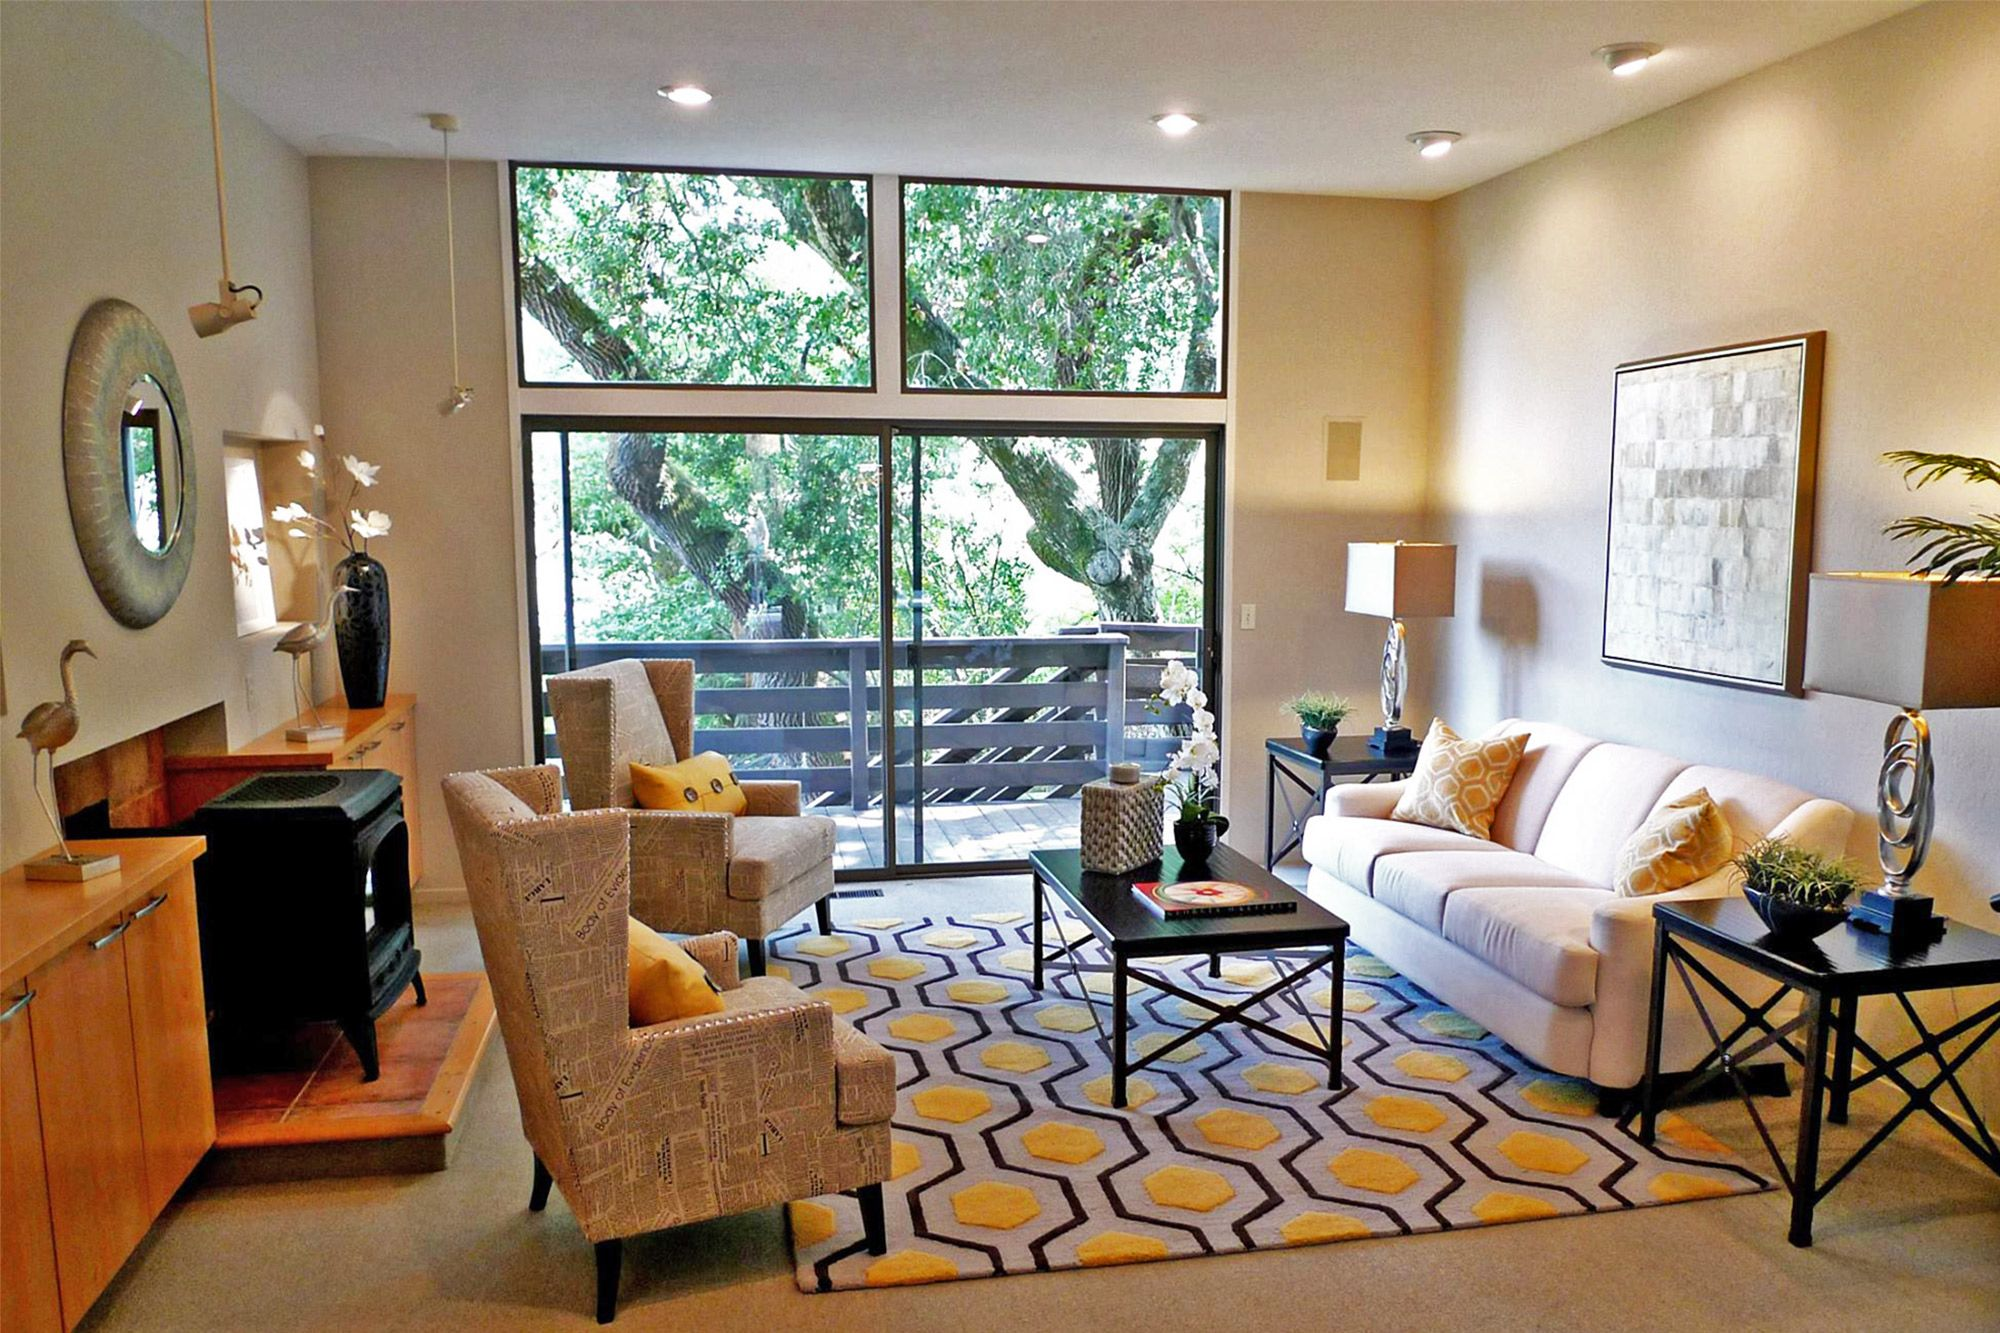 6 Things Your Home Stager Wishes You Knew Real Estate House And